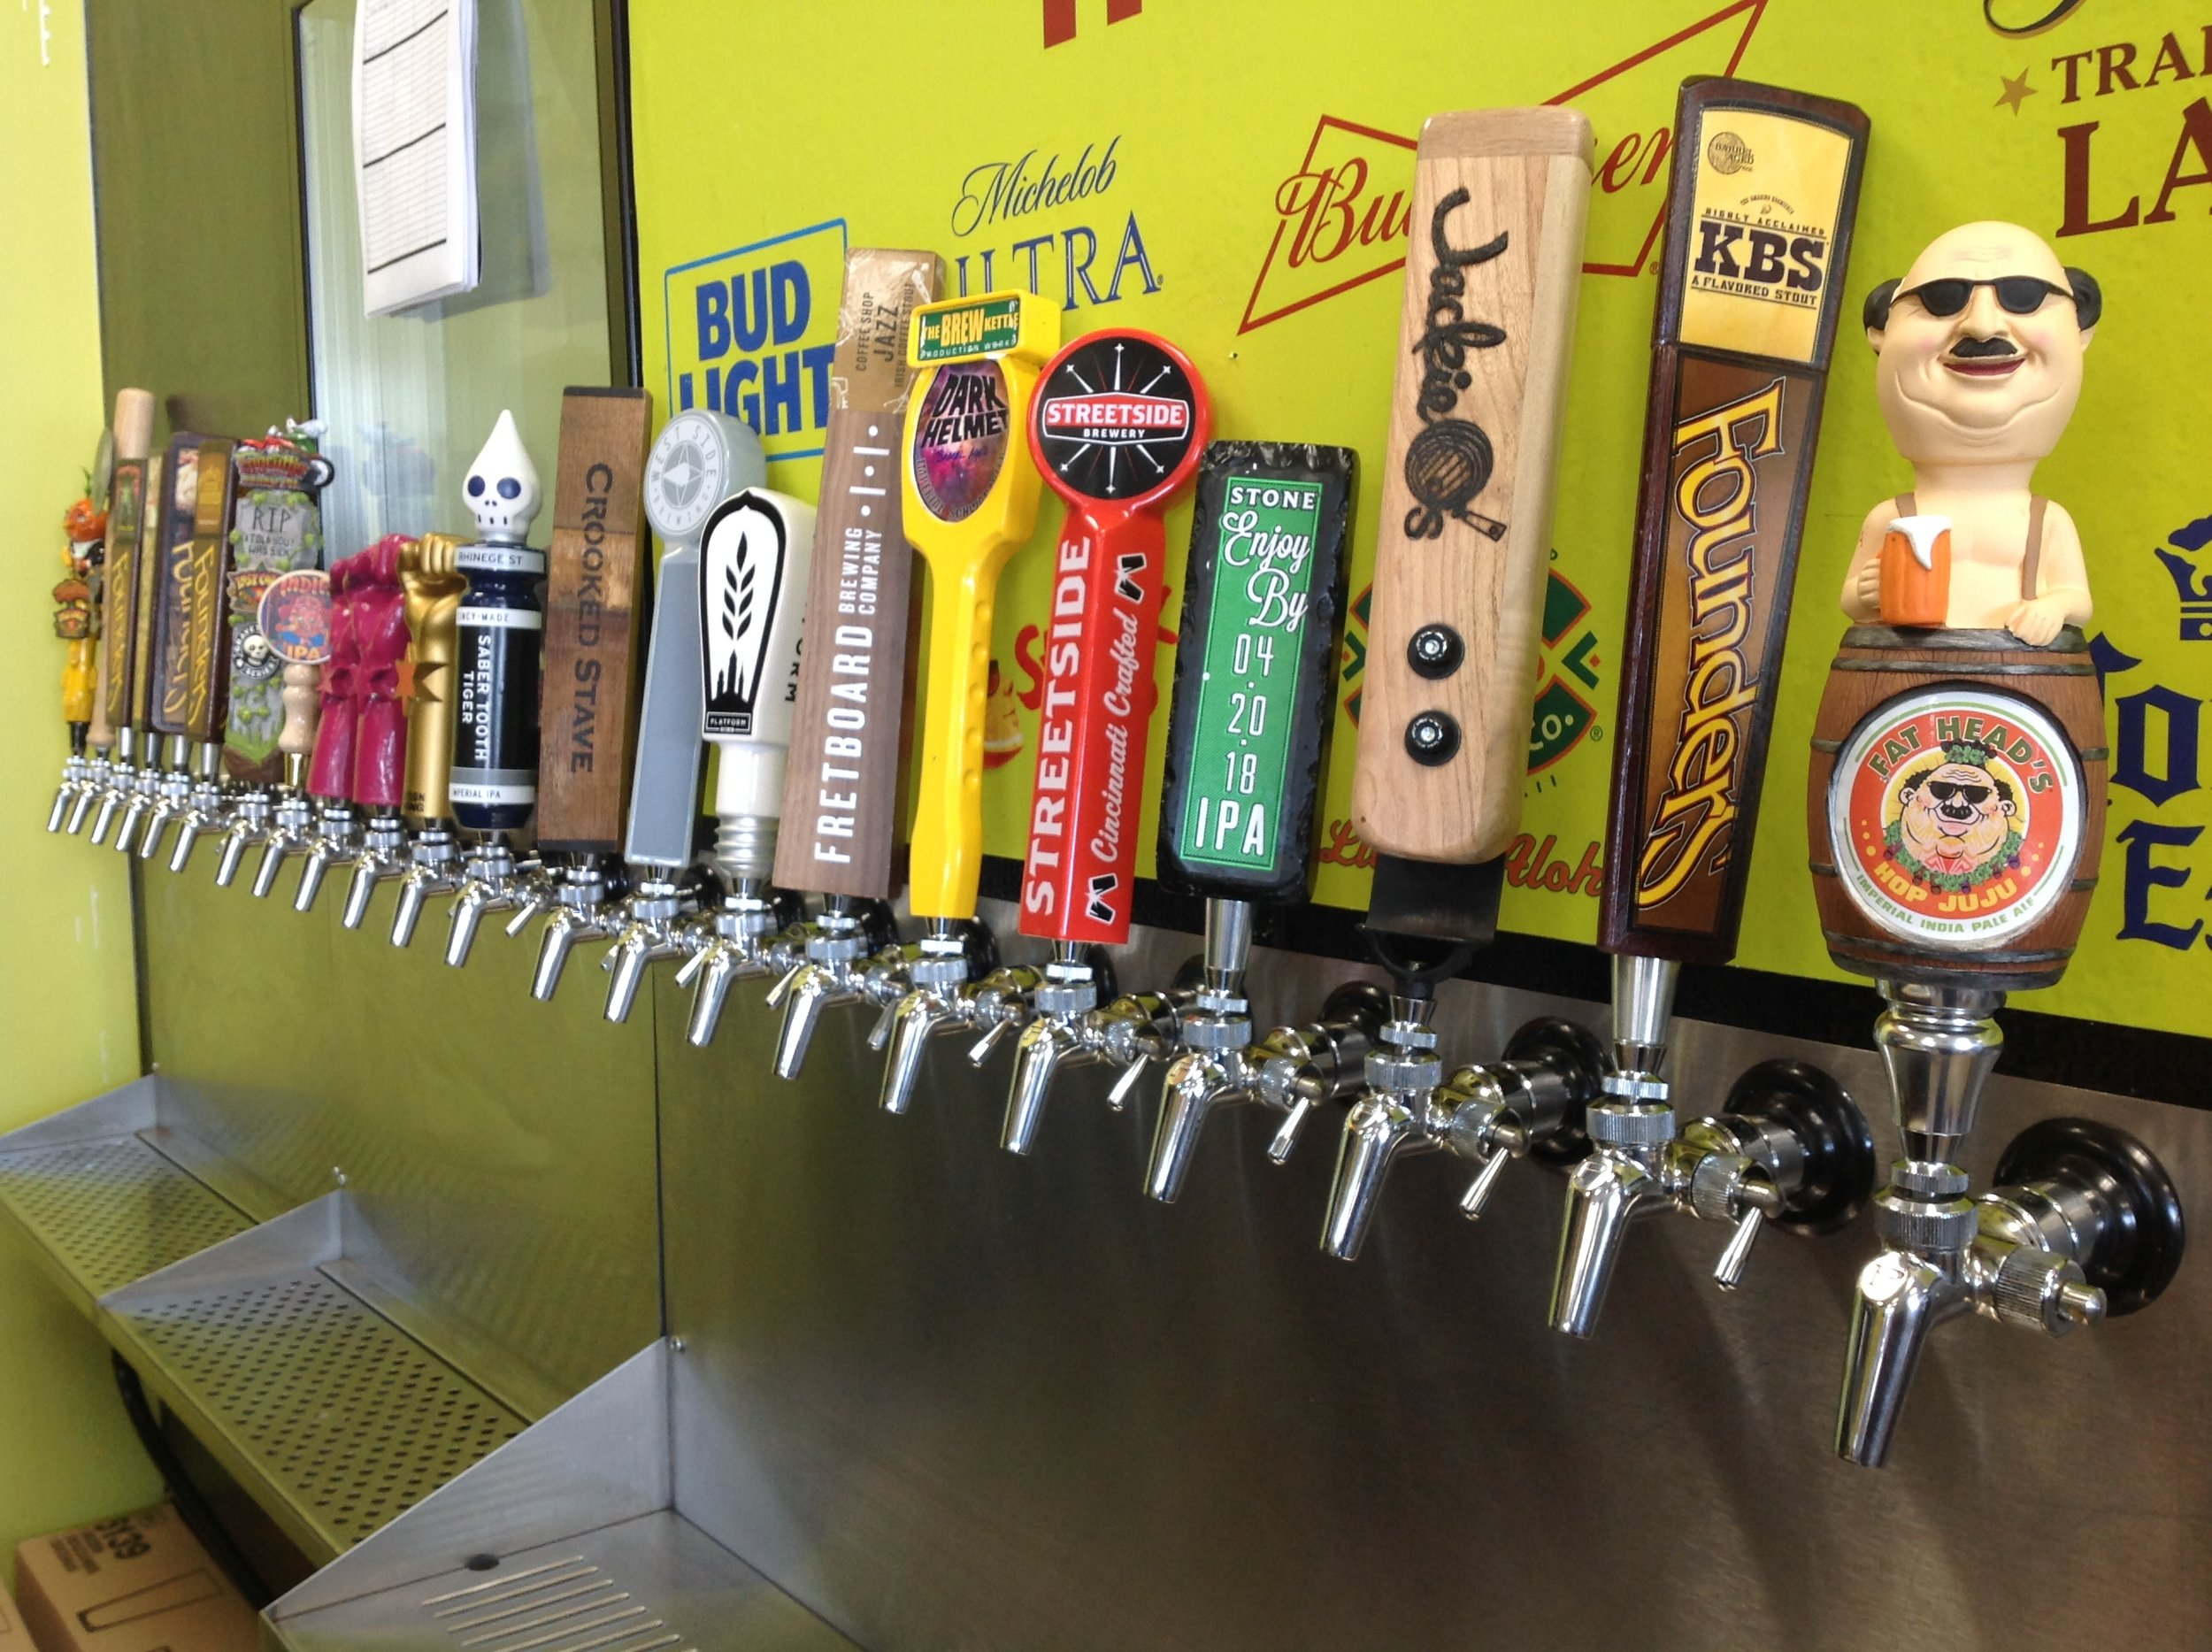 We now have 21 taps and the ability to serve pints of beer, as well as fill your growlers or our crowlers!